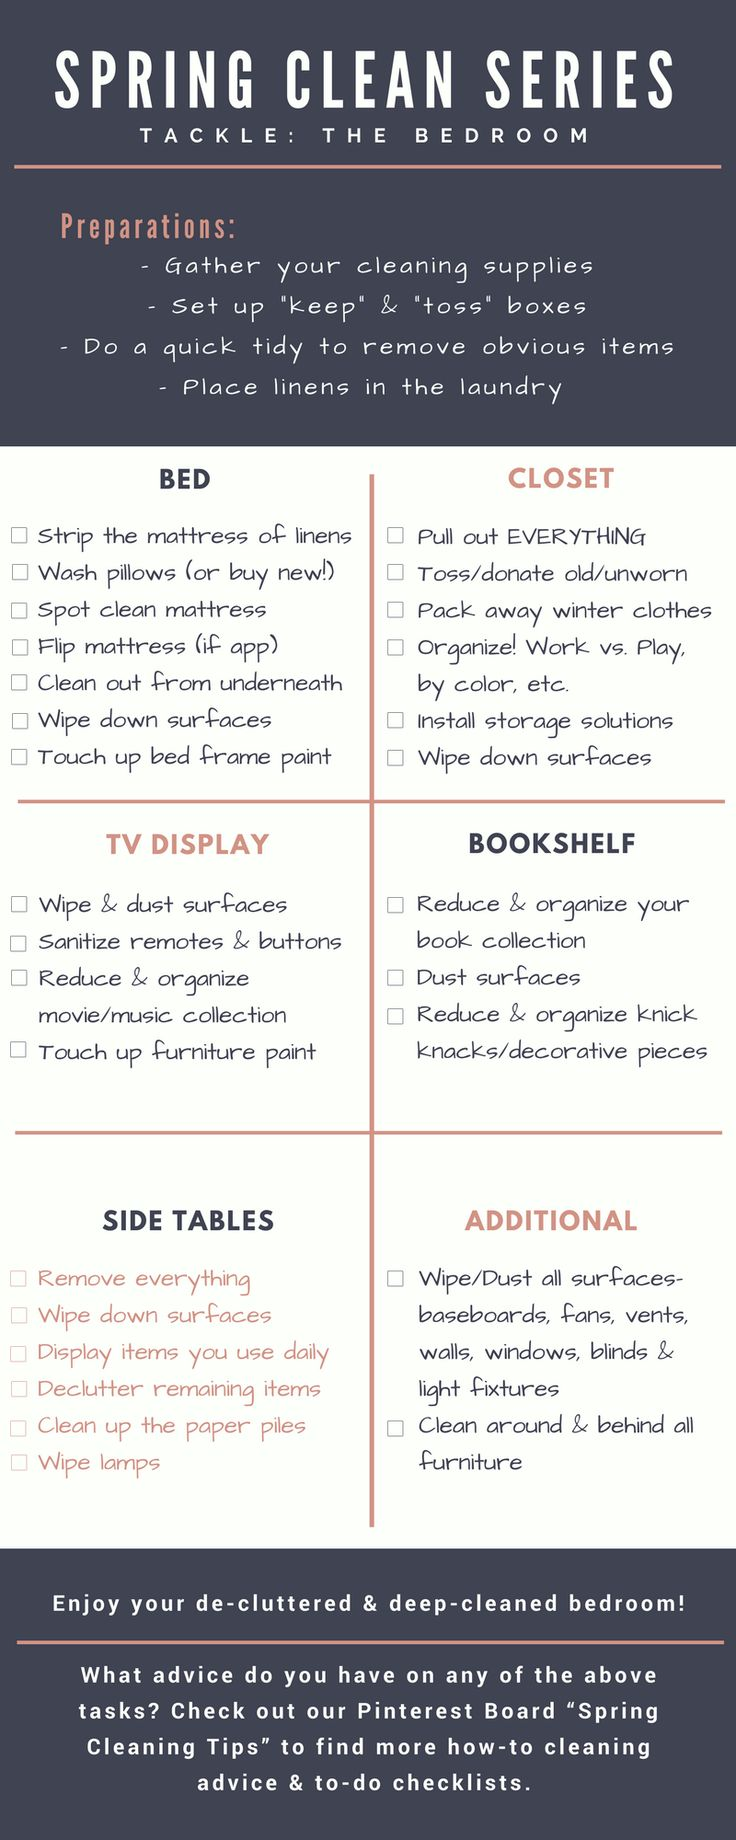 Free printable checklist for spring cleaning and decluttering your bedroom!